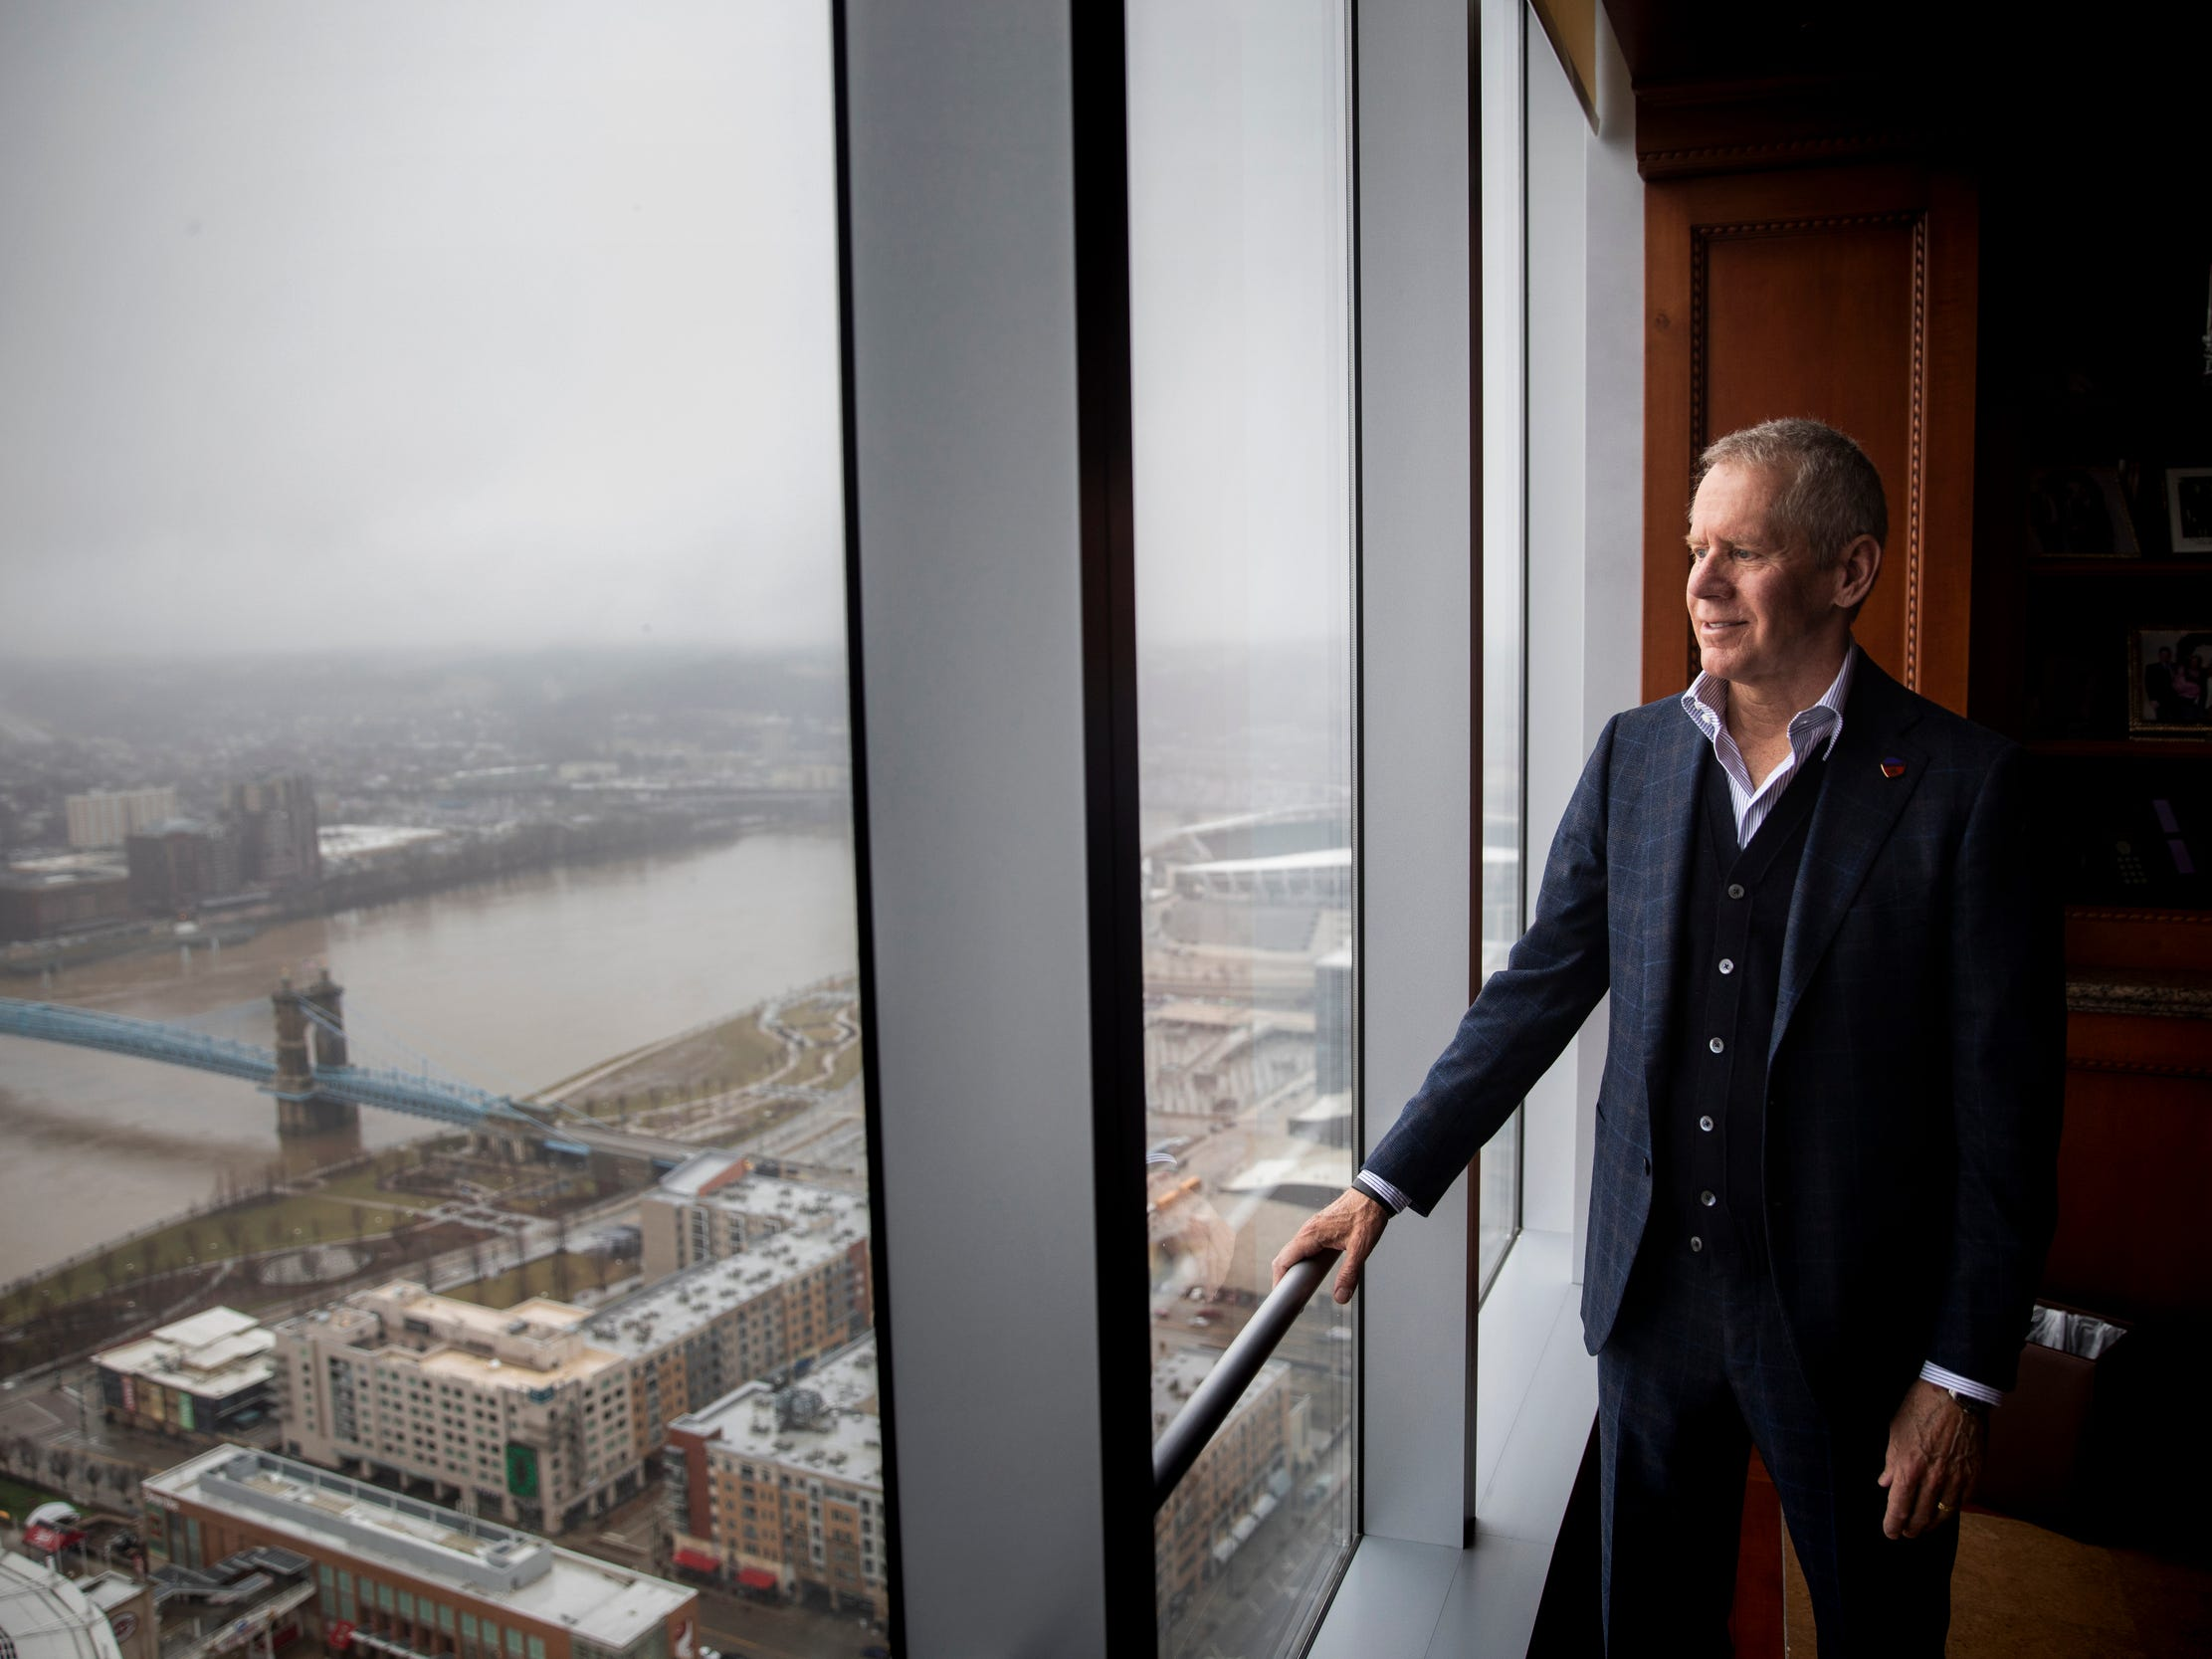 Carl Lindner III poses for a portrait in his office on the 41st floor of Great American Tower at Queen City Square in Downtown Cincinnati Wednesday, February 20, 2019. Lindner is the co-chief executive officer of American Financial Group and majority owner of FC Cincinnati.